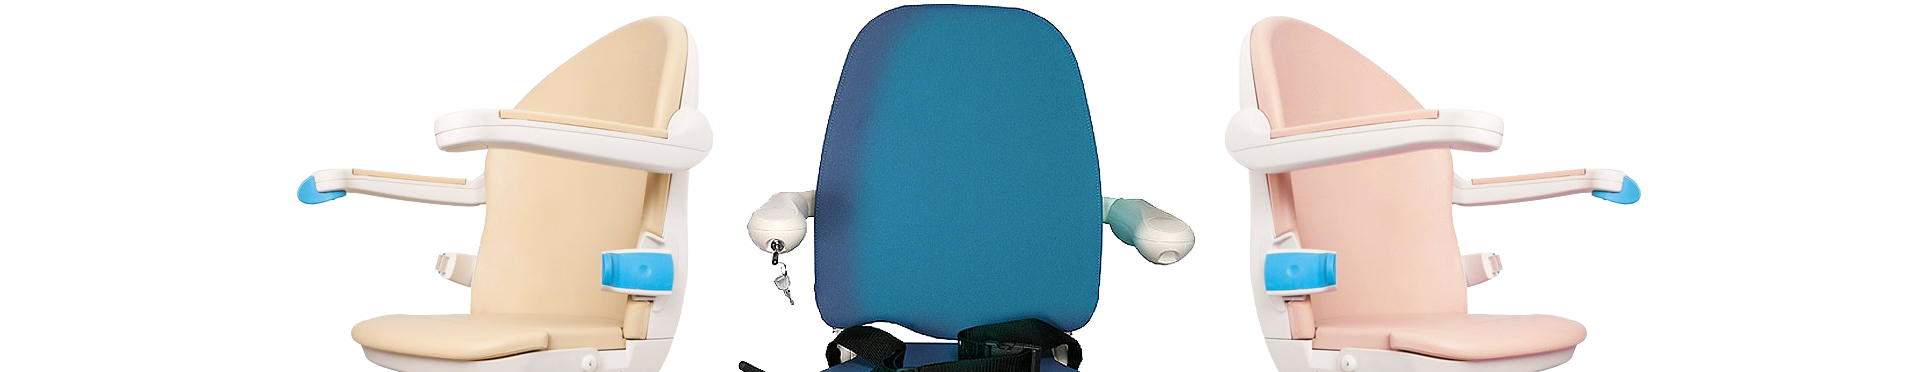 Superglide Stairlift chairs